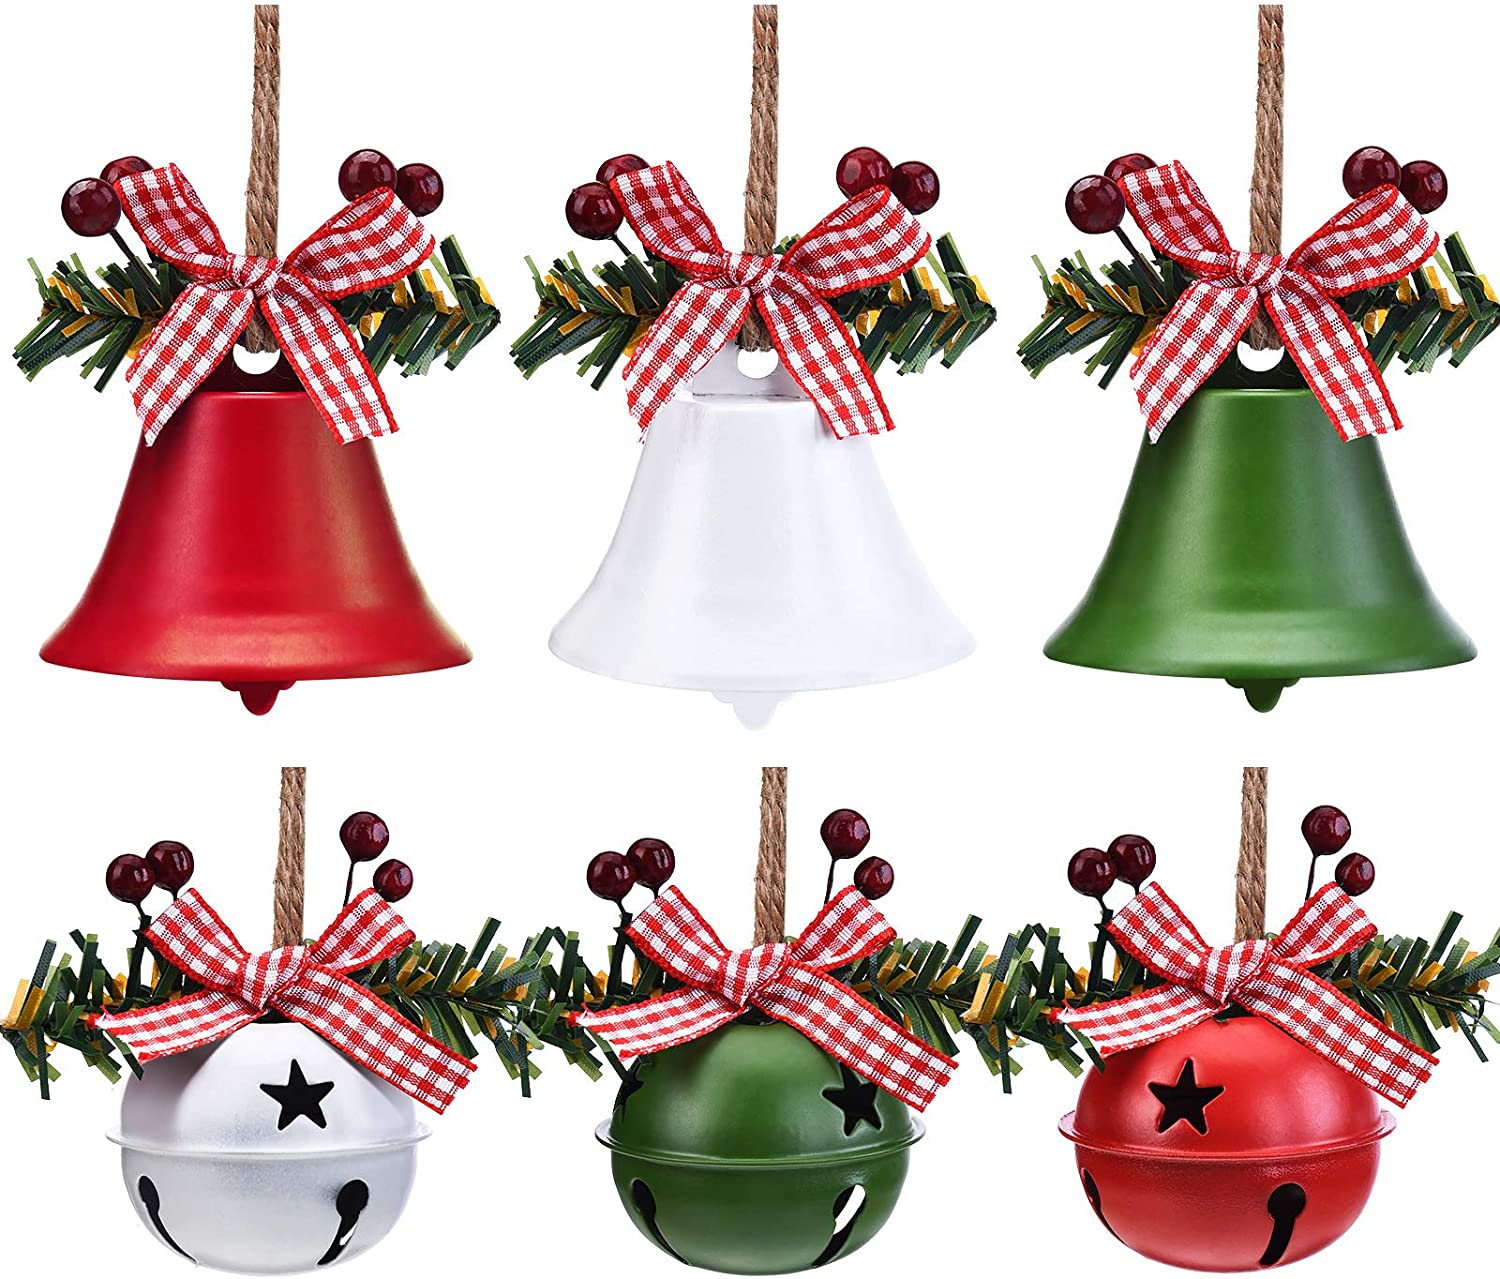 6 Pieces Christmas Bells Ornaments Christmas Jingle Bells Craft Bells Star Cutouts Christmas Anniversary Bells with Holly Berry for Christmas Tree Decor Window Door Christmas Holiday Party Supplies